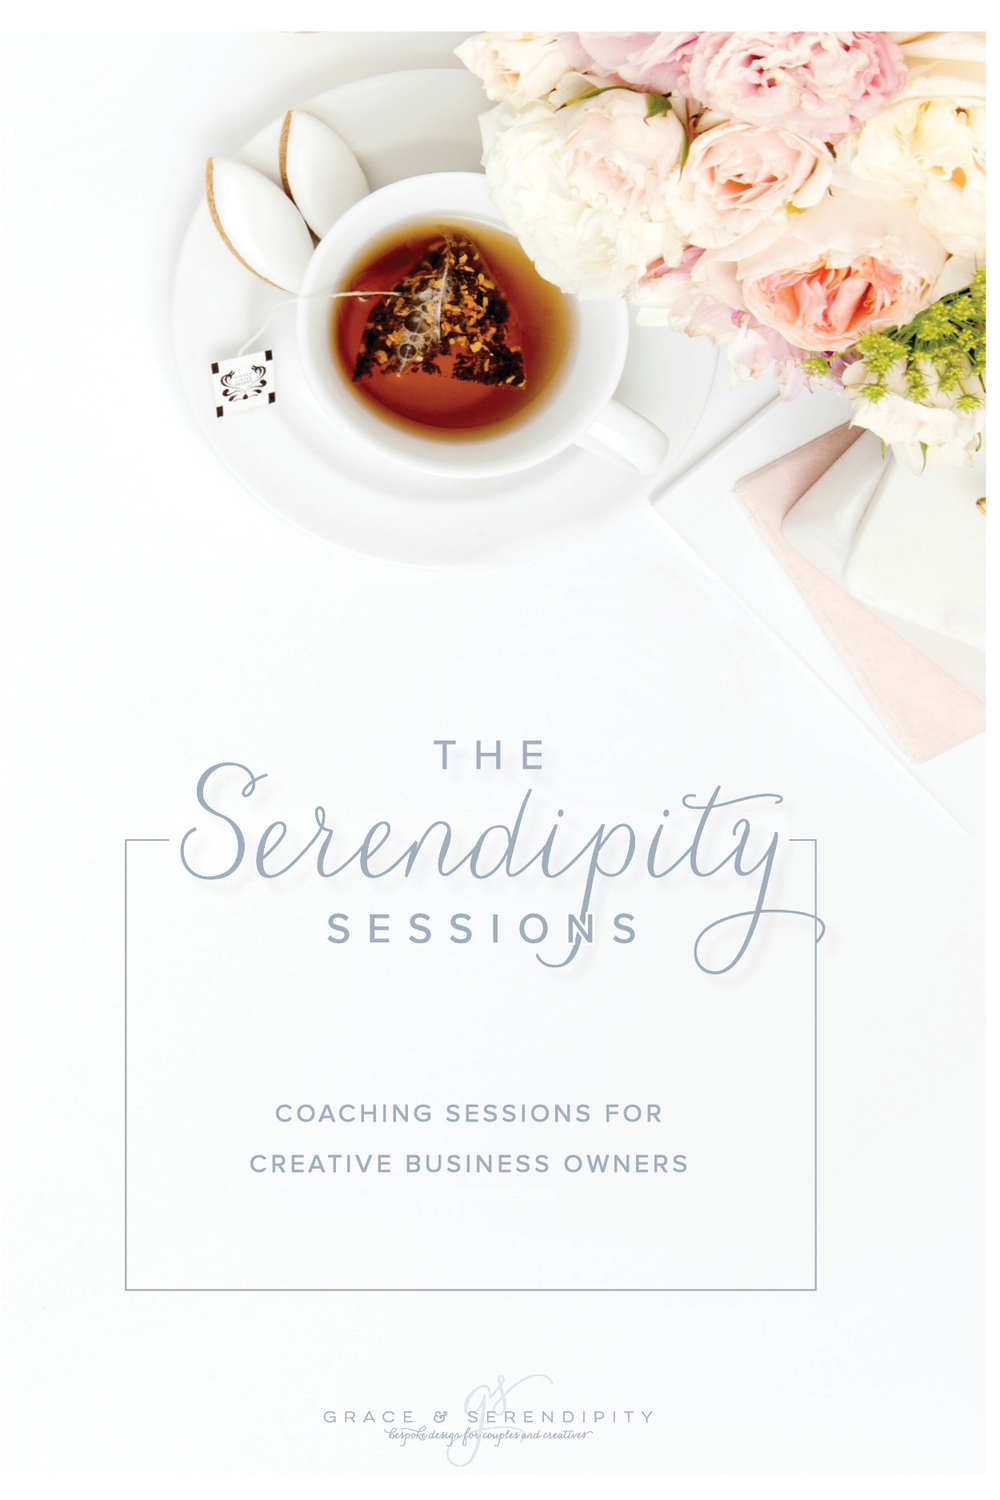 The Serendipity Sessions - Business Coaching for Creative Business Owners with Grace and Serendipity